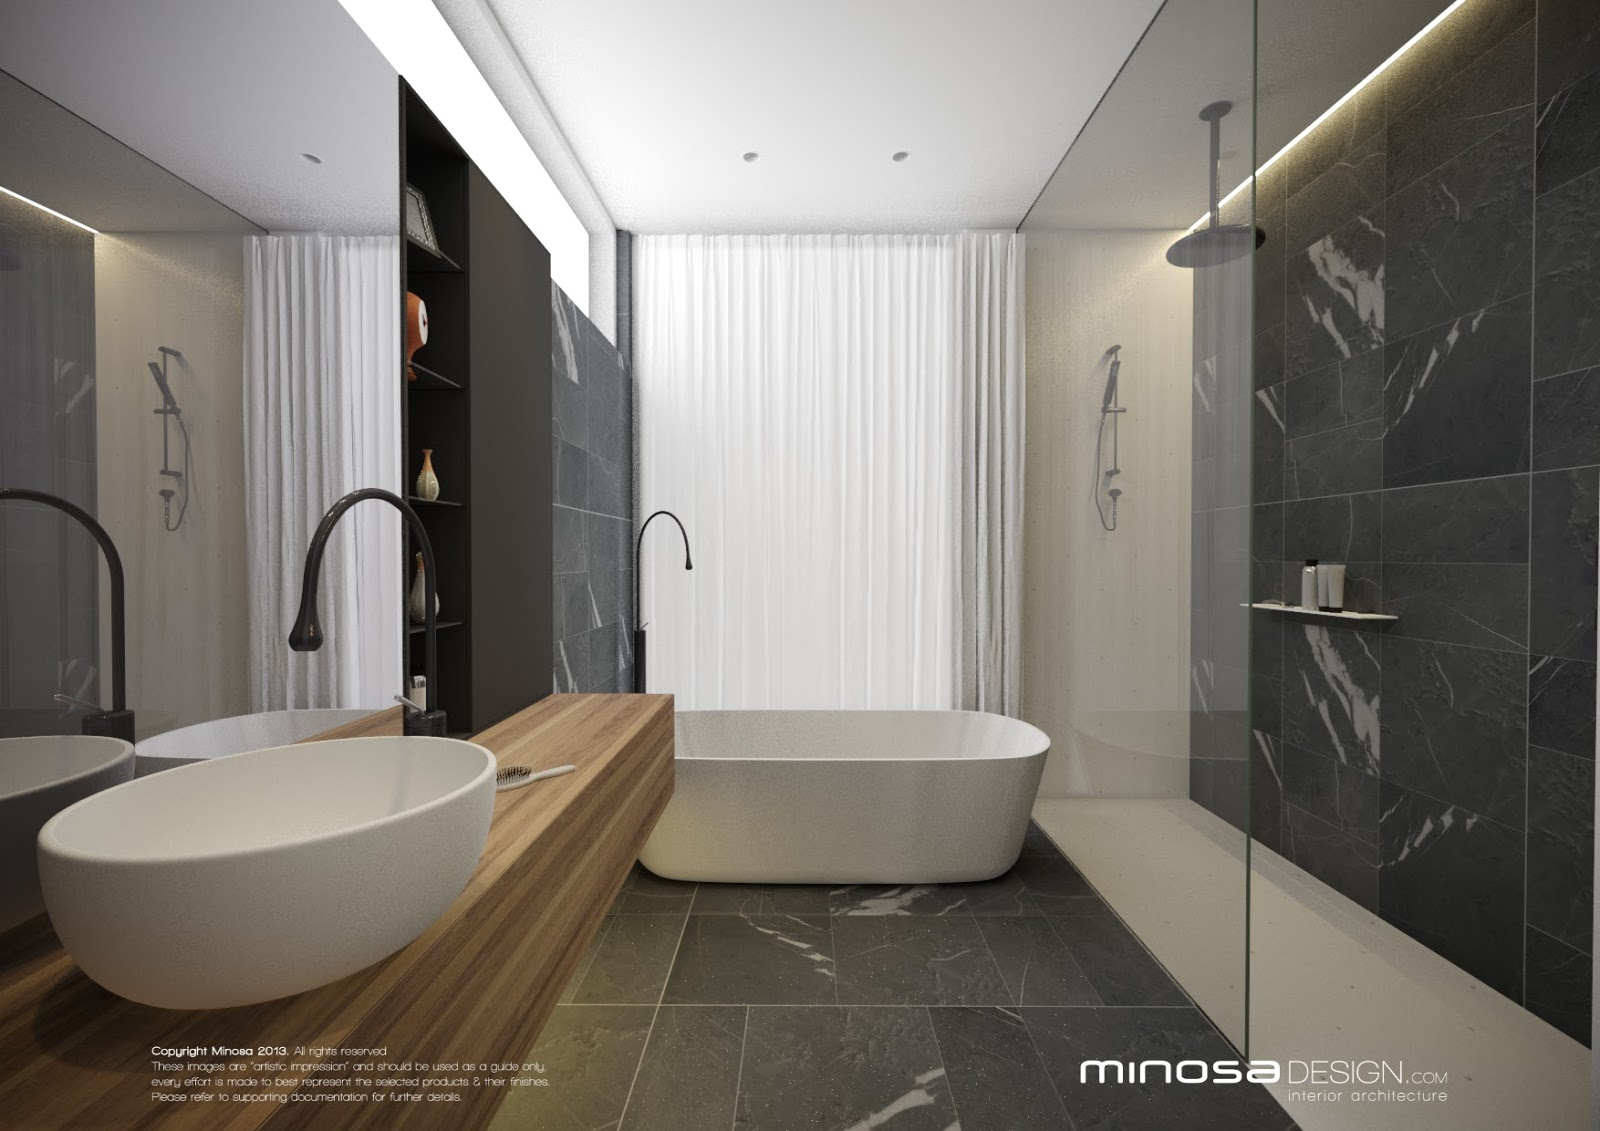 Minosa modern bathroom design to share for Bathrooms designs